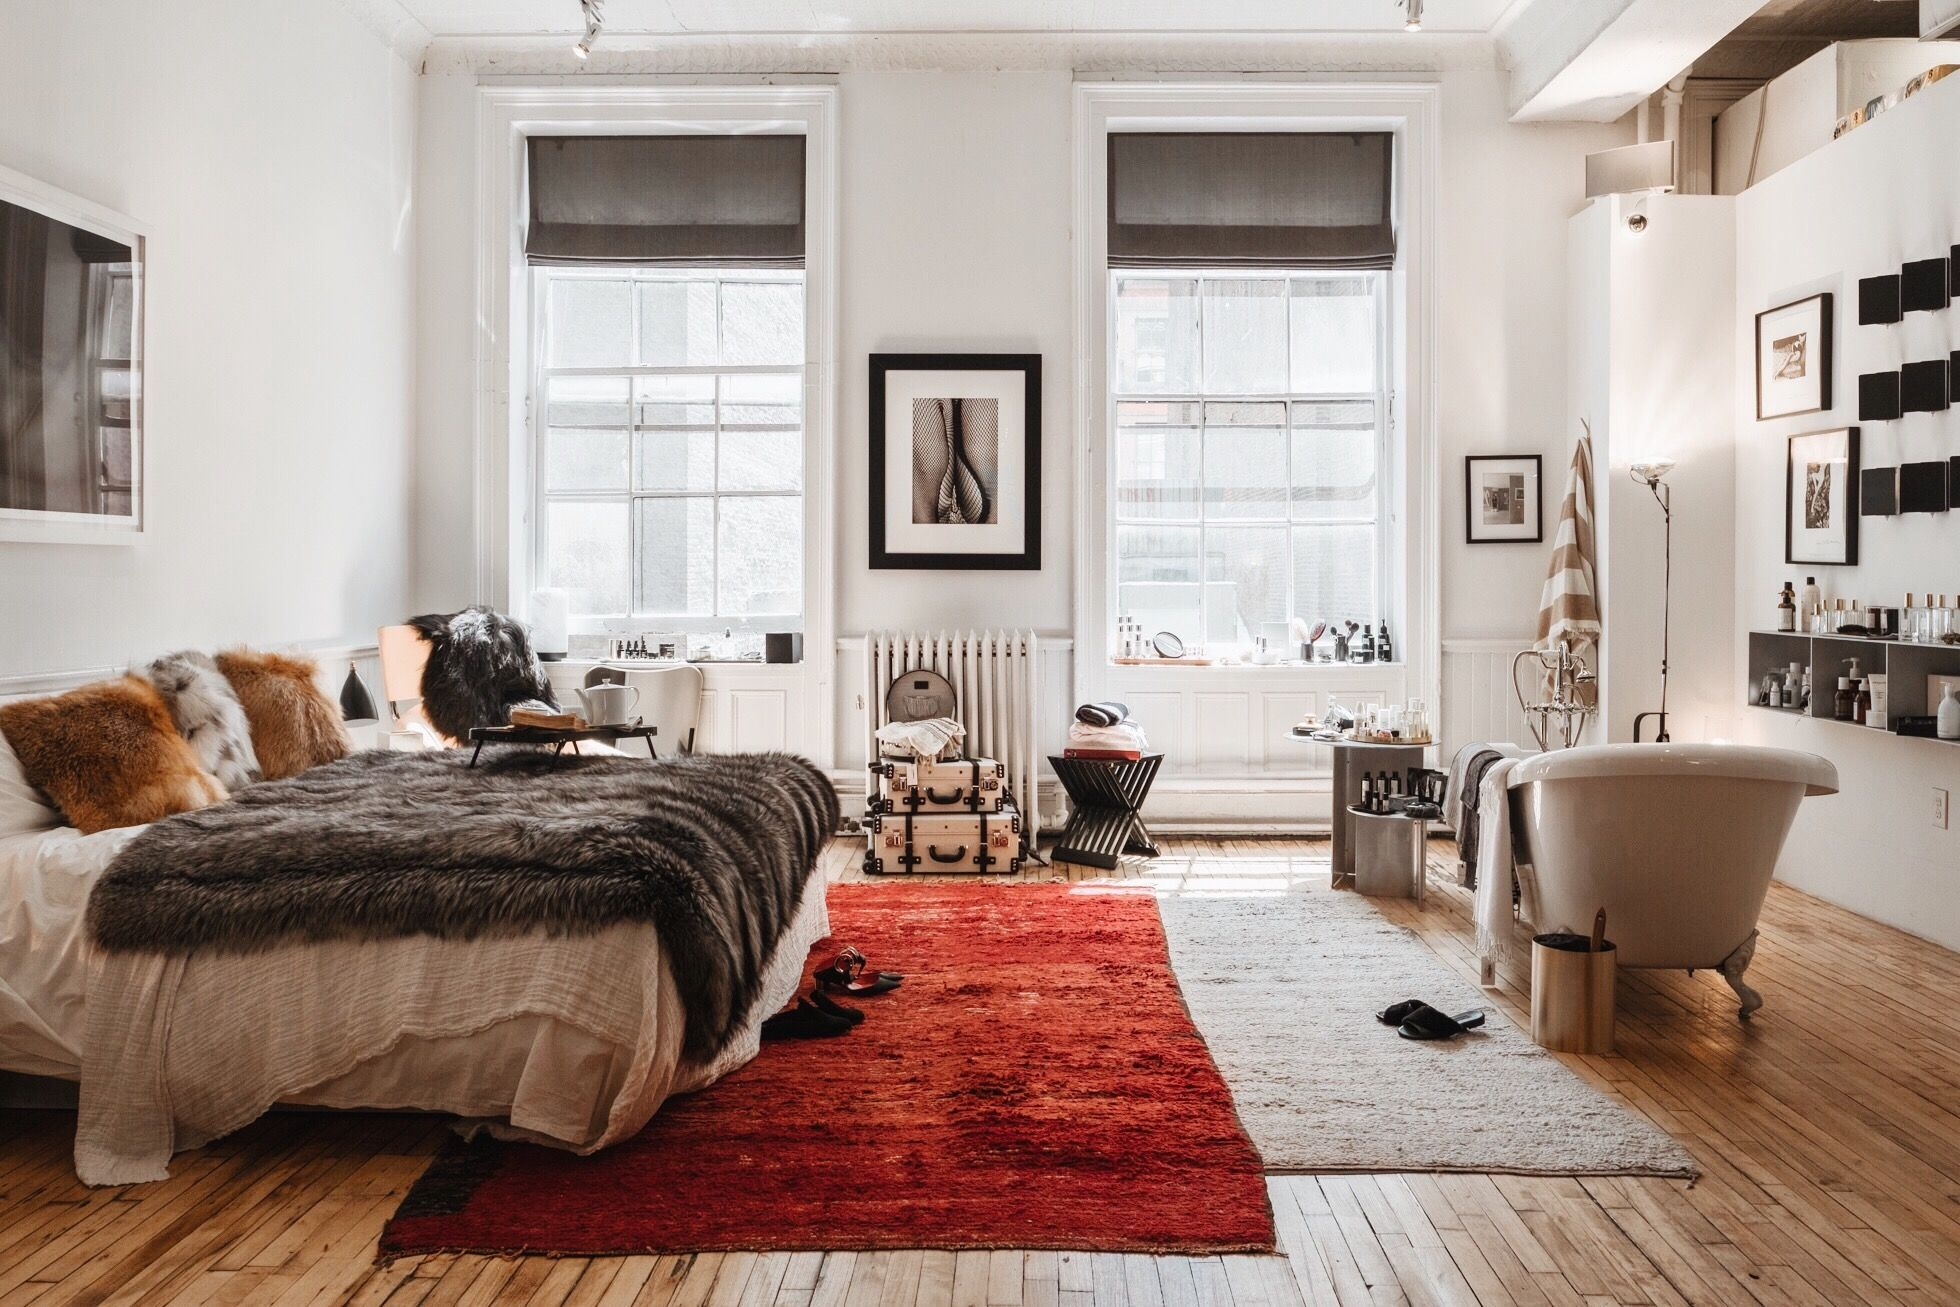 The Apartment By The Line New York Apartment Bedroom Decor Apartment Interior Living Room Decor Apartment